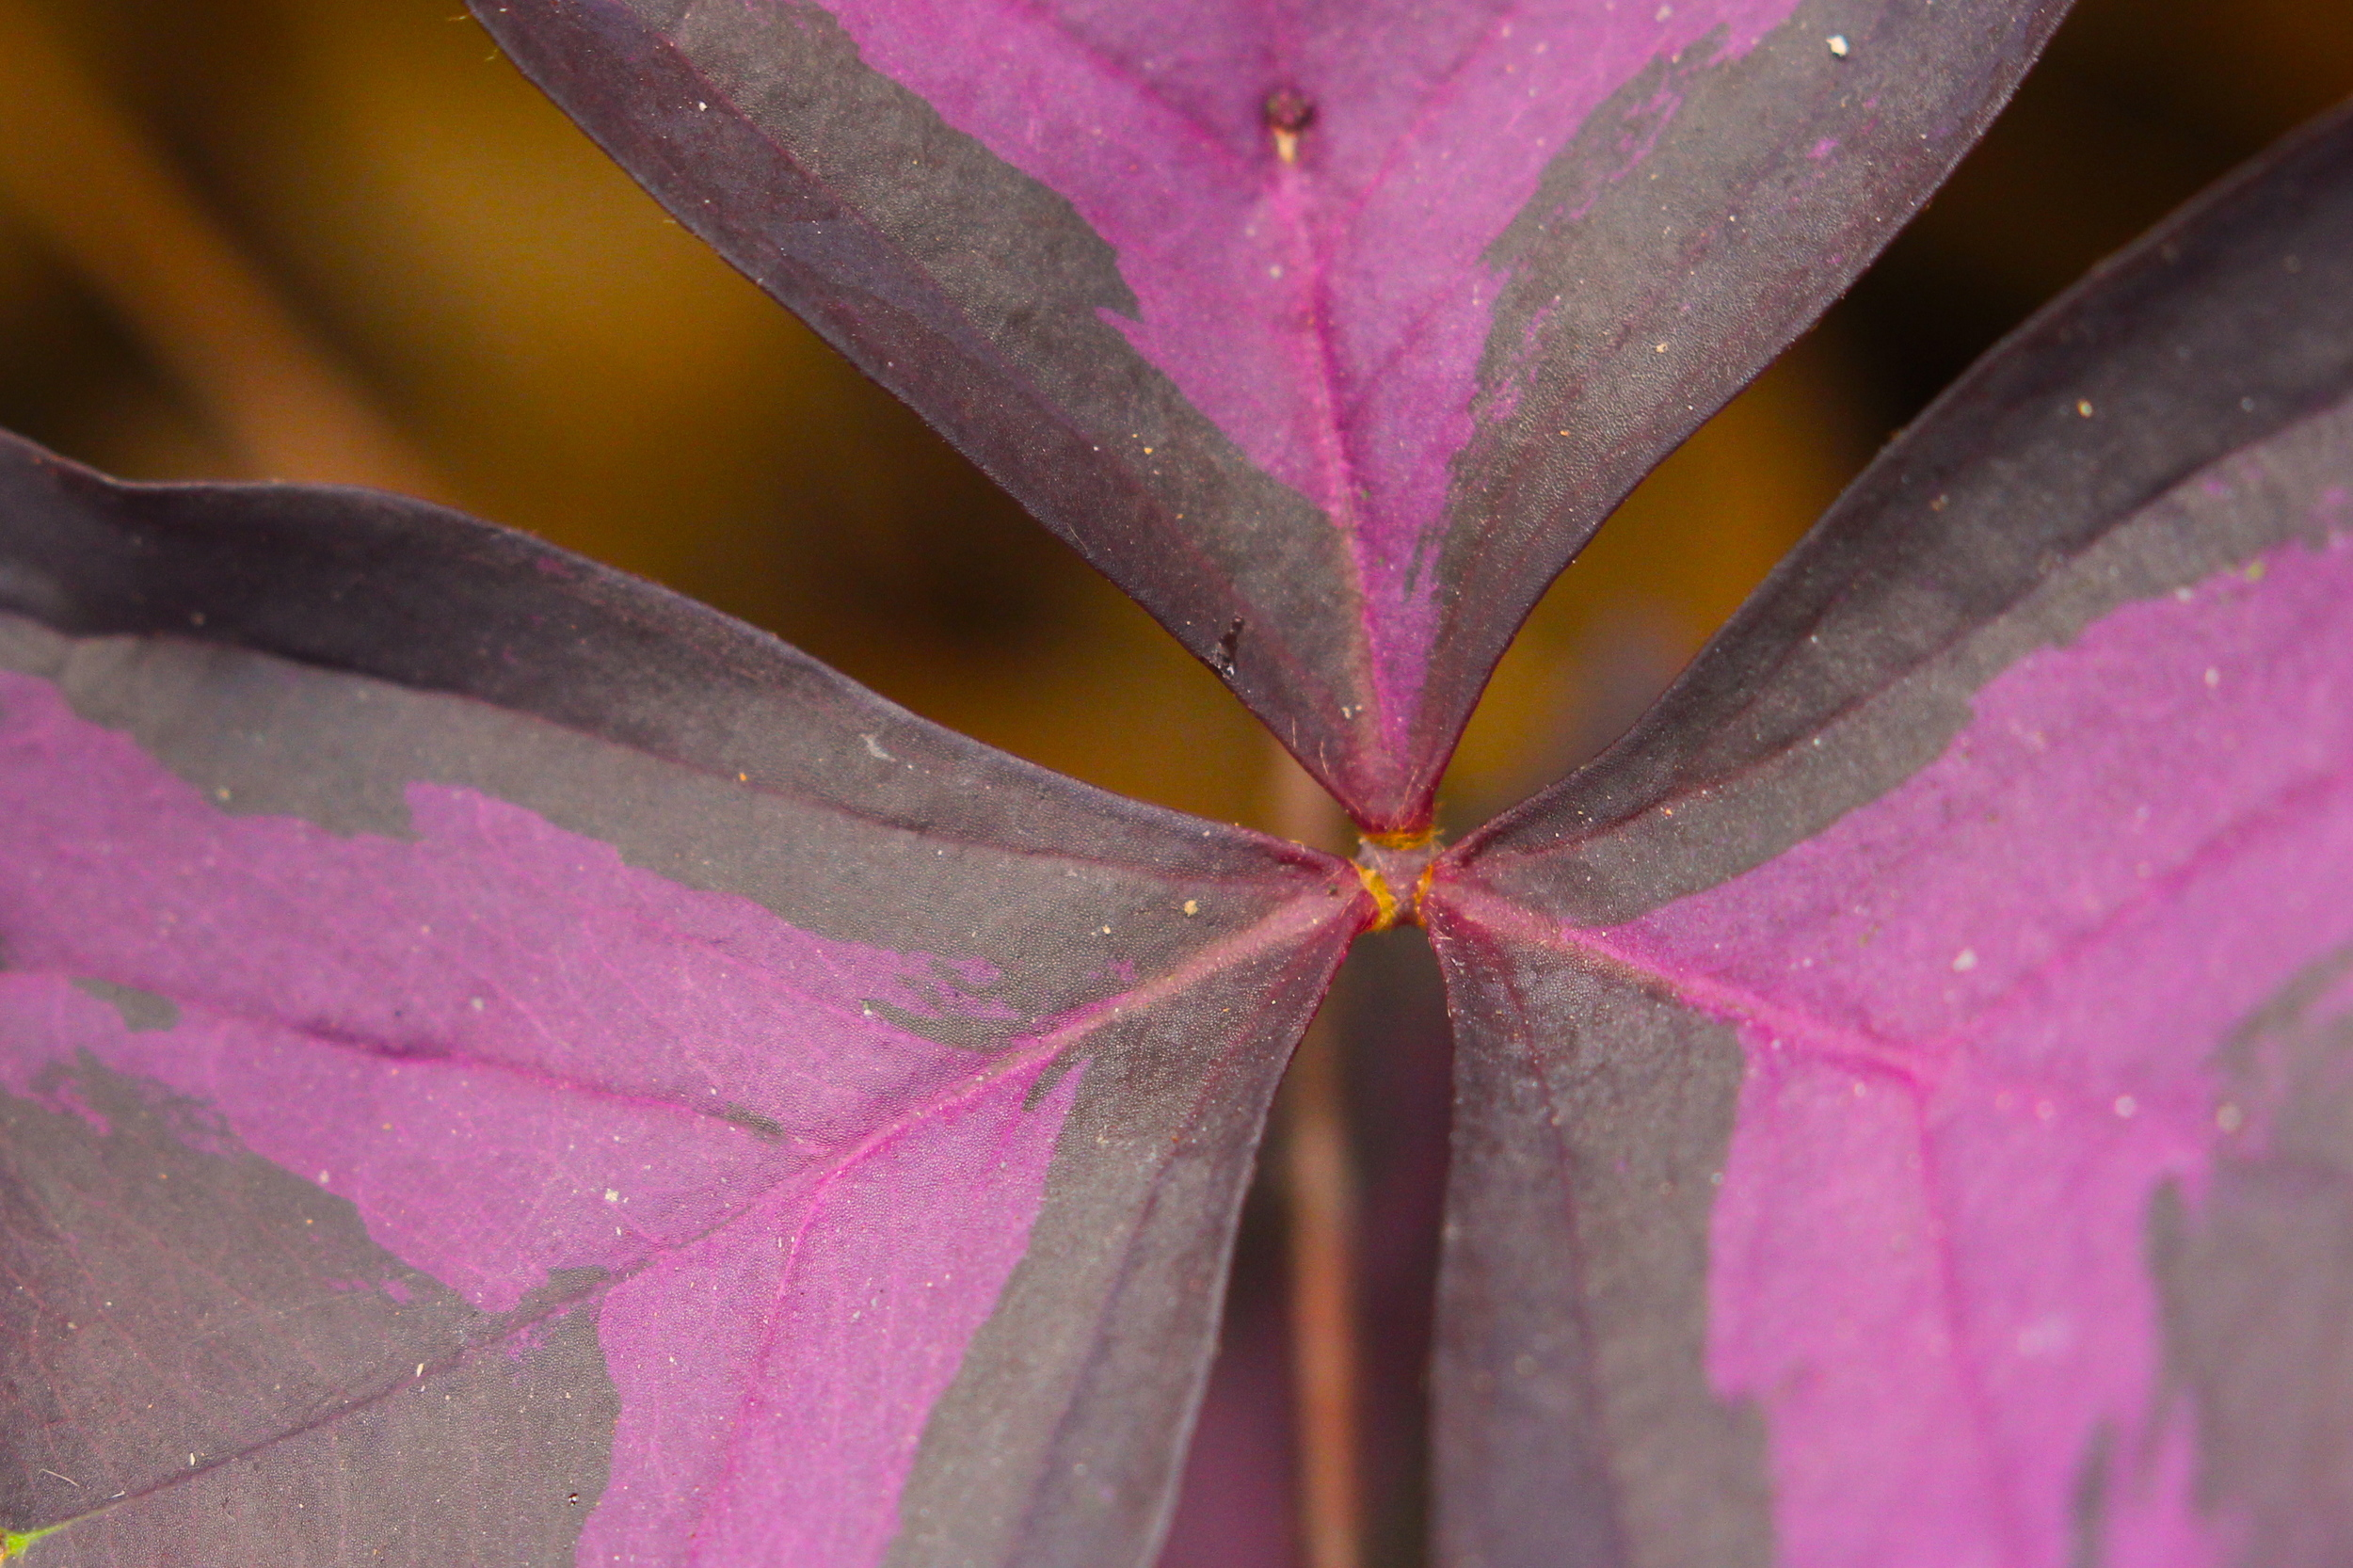 macro nature photo with magenta leaves